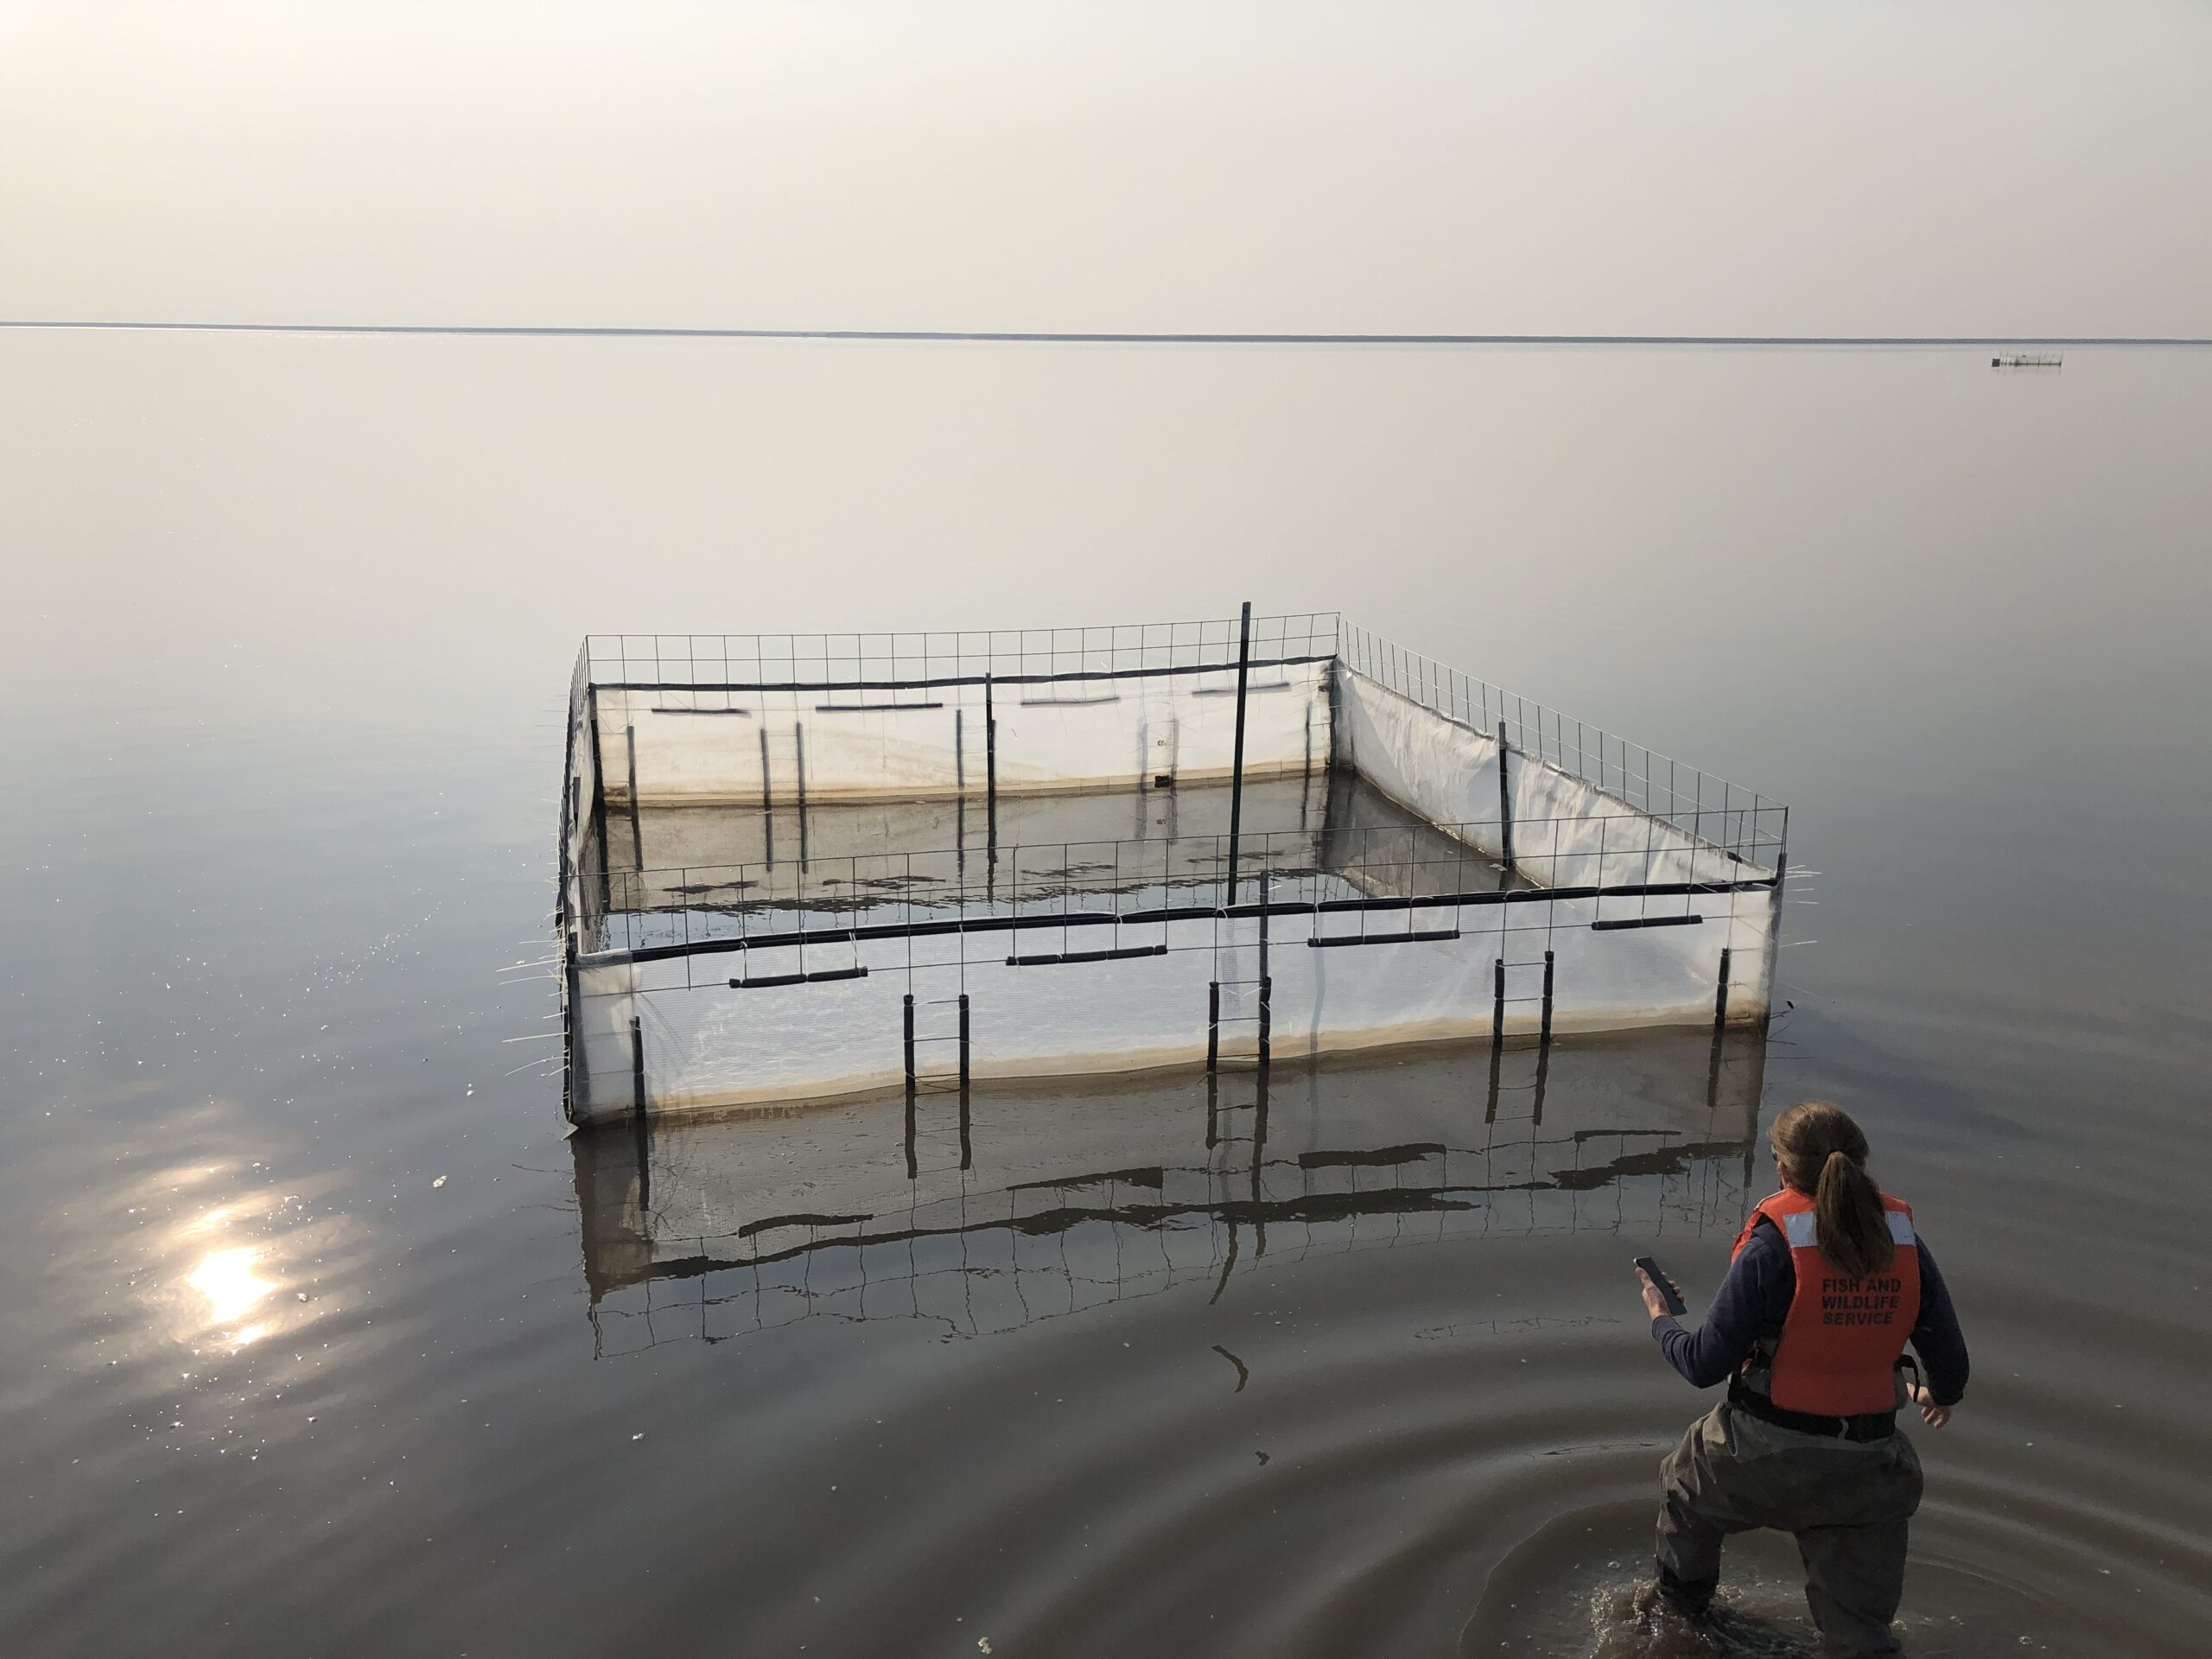 Vast lake is very still. Large box made of poles and canvas is constructed in the middle of the lake. A biologist stands next to it in knee deep water.